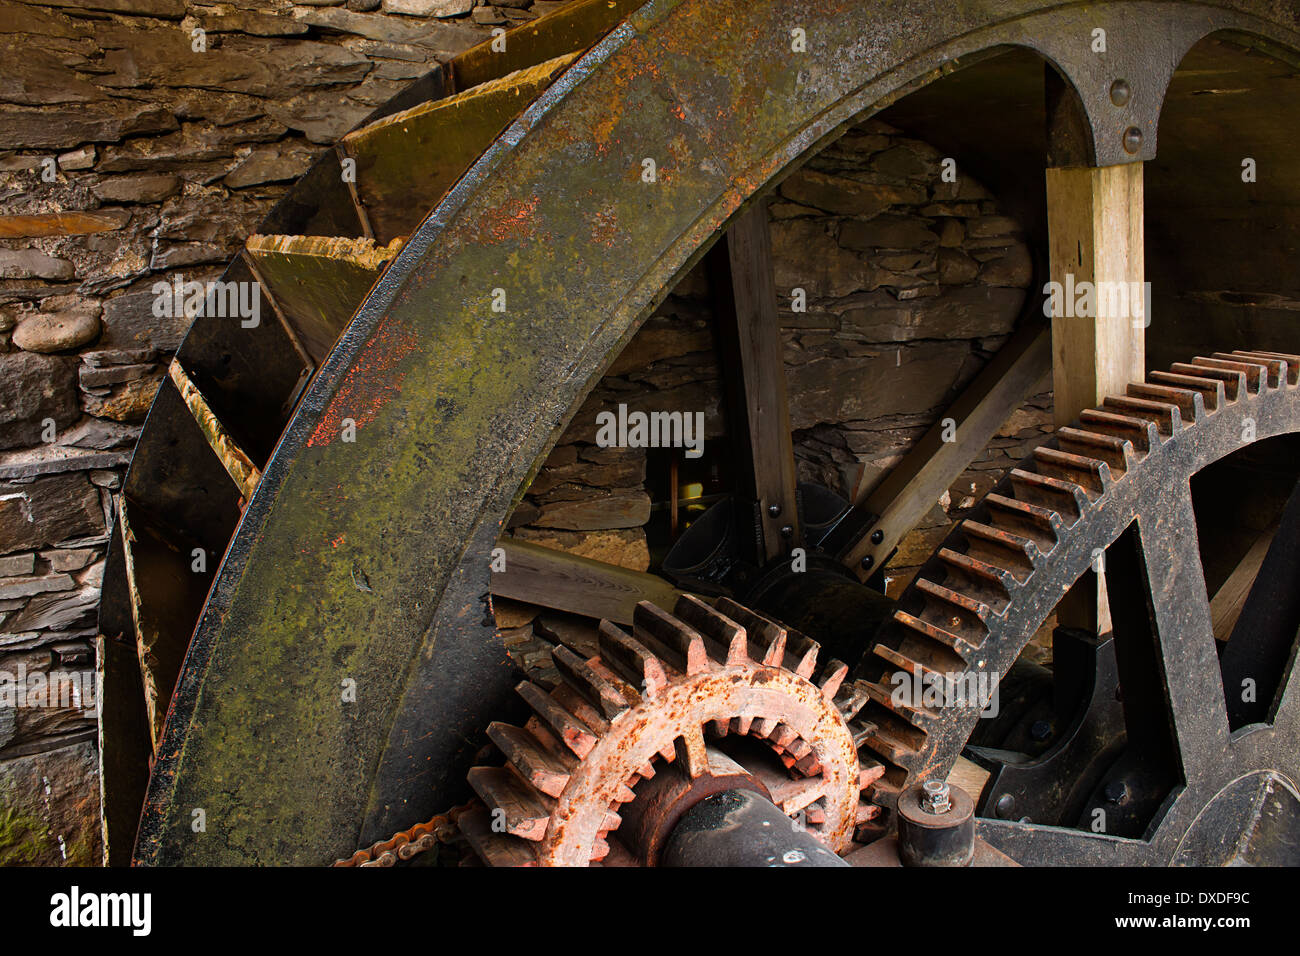 Enclosed water mill wheel workings with ancient metal and wooden cog system part of industrial heritage. - Stock Image